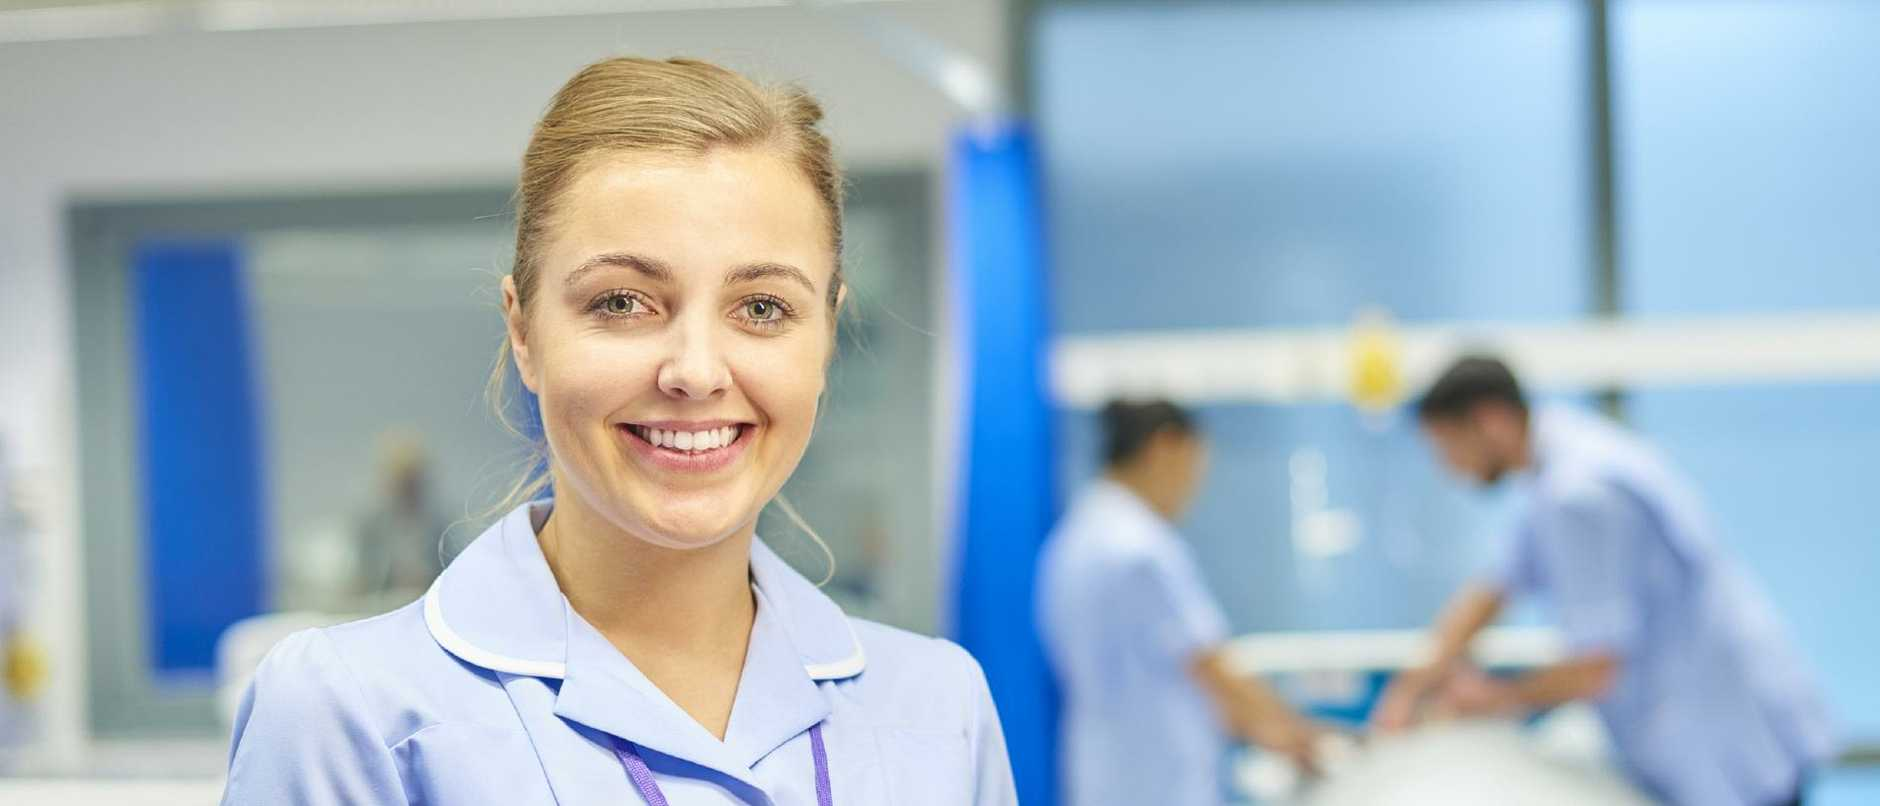 Nurses now receiving money from pharmaceutical companies. Picture istock